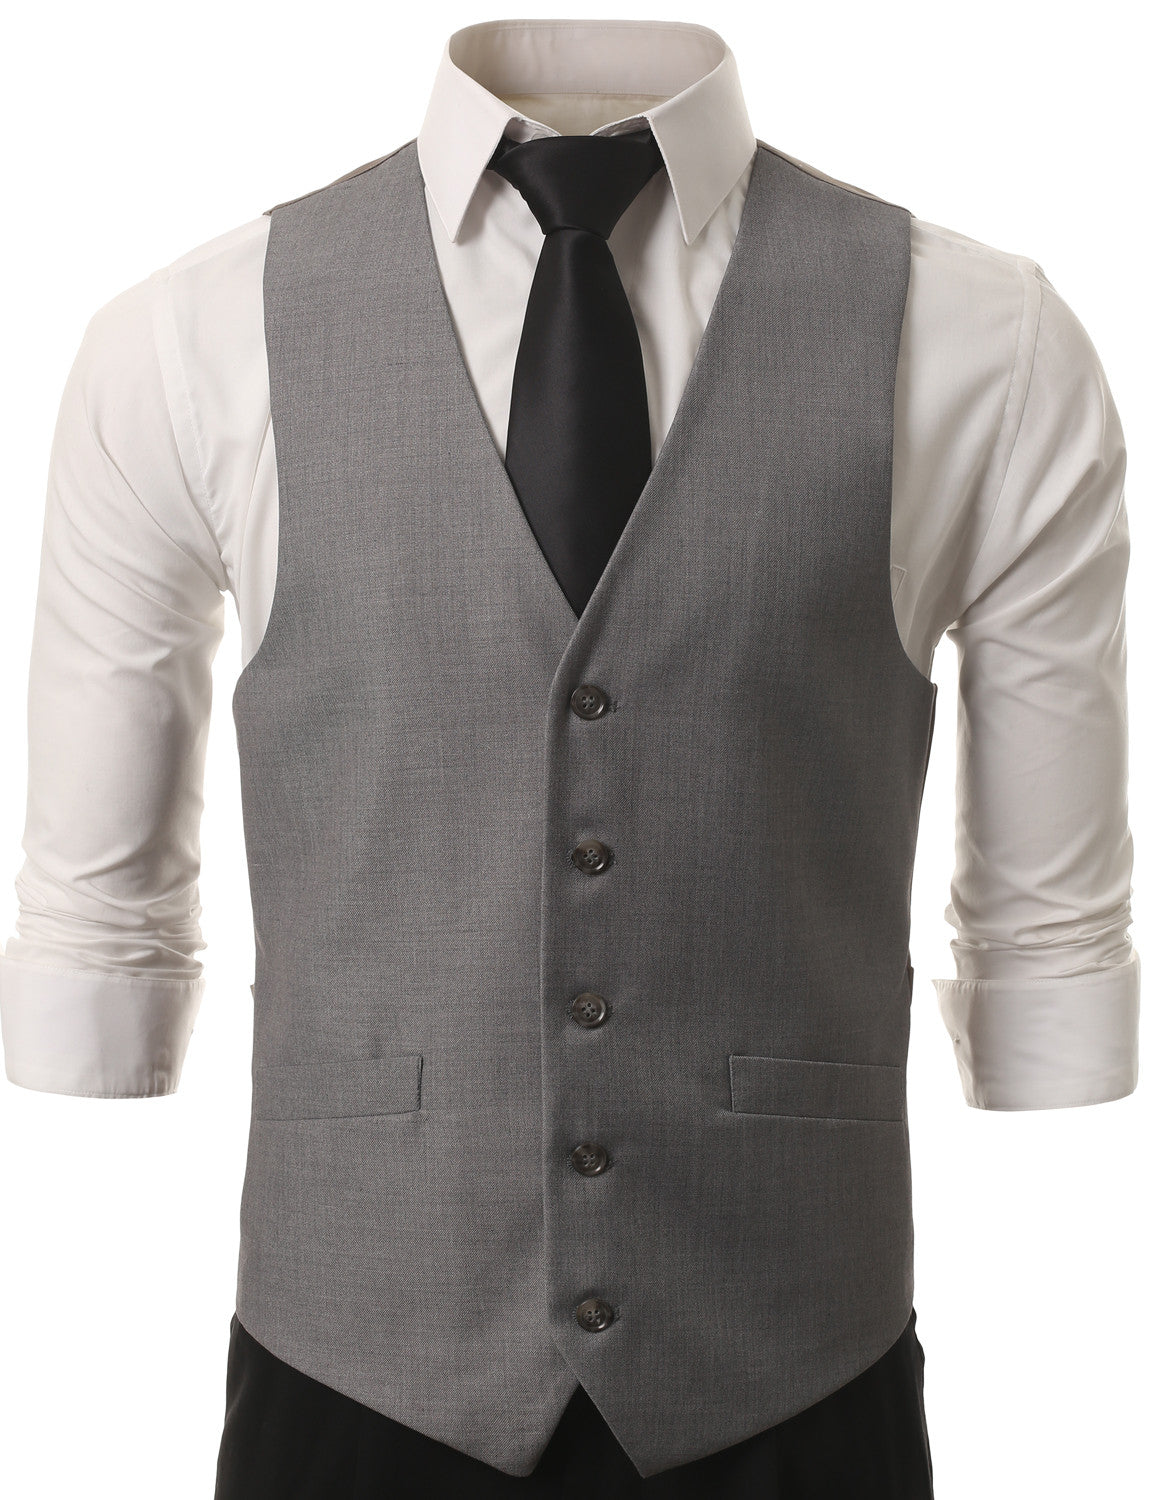 02GRY Satin Tuxedo Slim Fit Waistcoat Vest (Big & Tall Available)- MONDAYSUIT